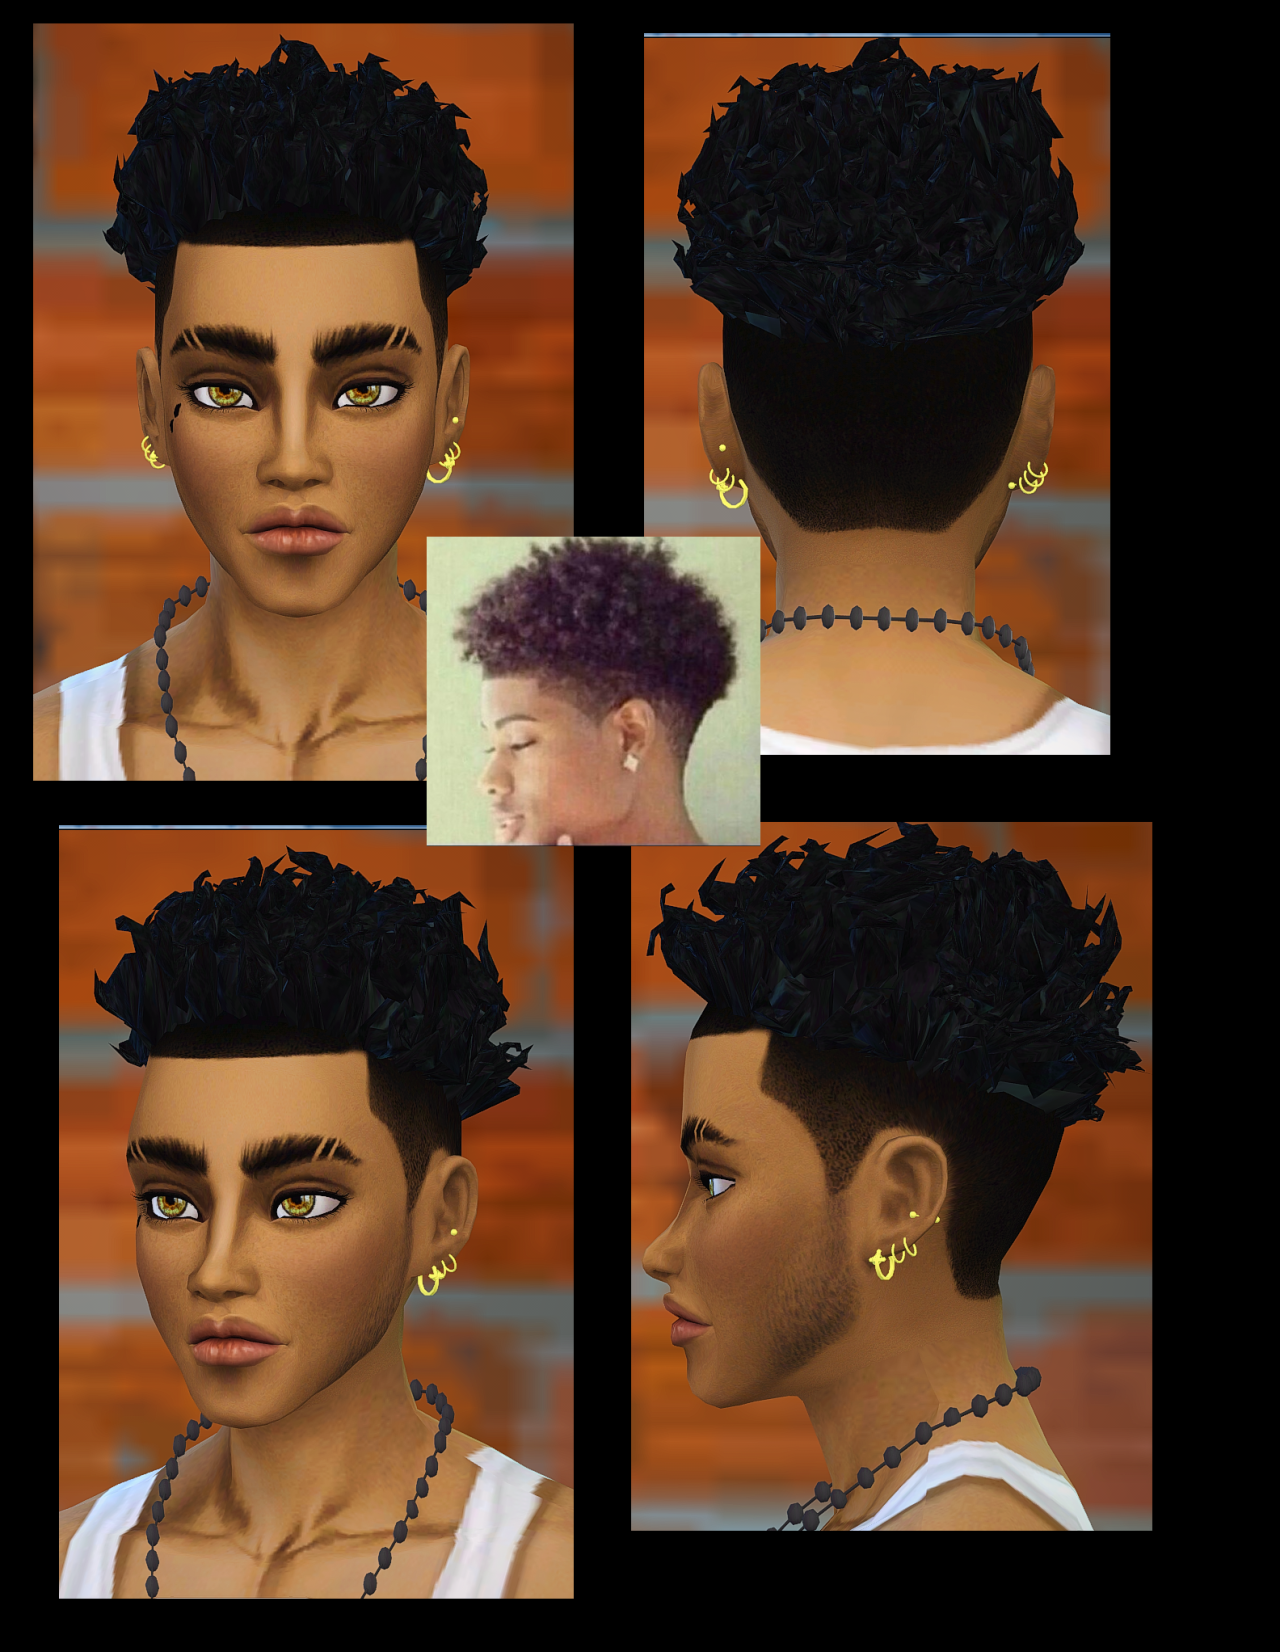 Sims 4 Curly Hair Another Curly Hair Requested I Used This Hairstyle By Kiara As A Basick Mesh